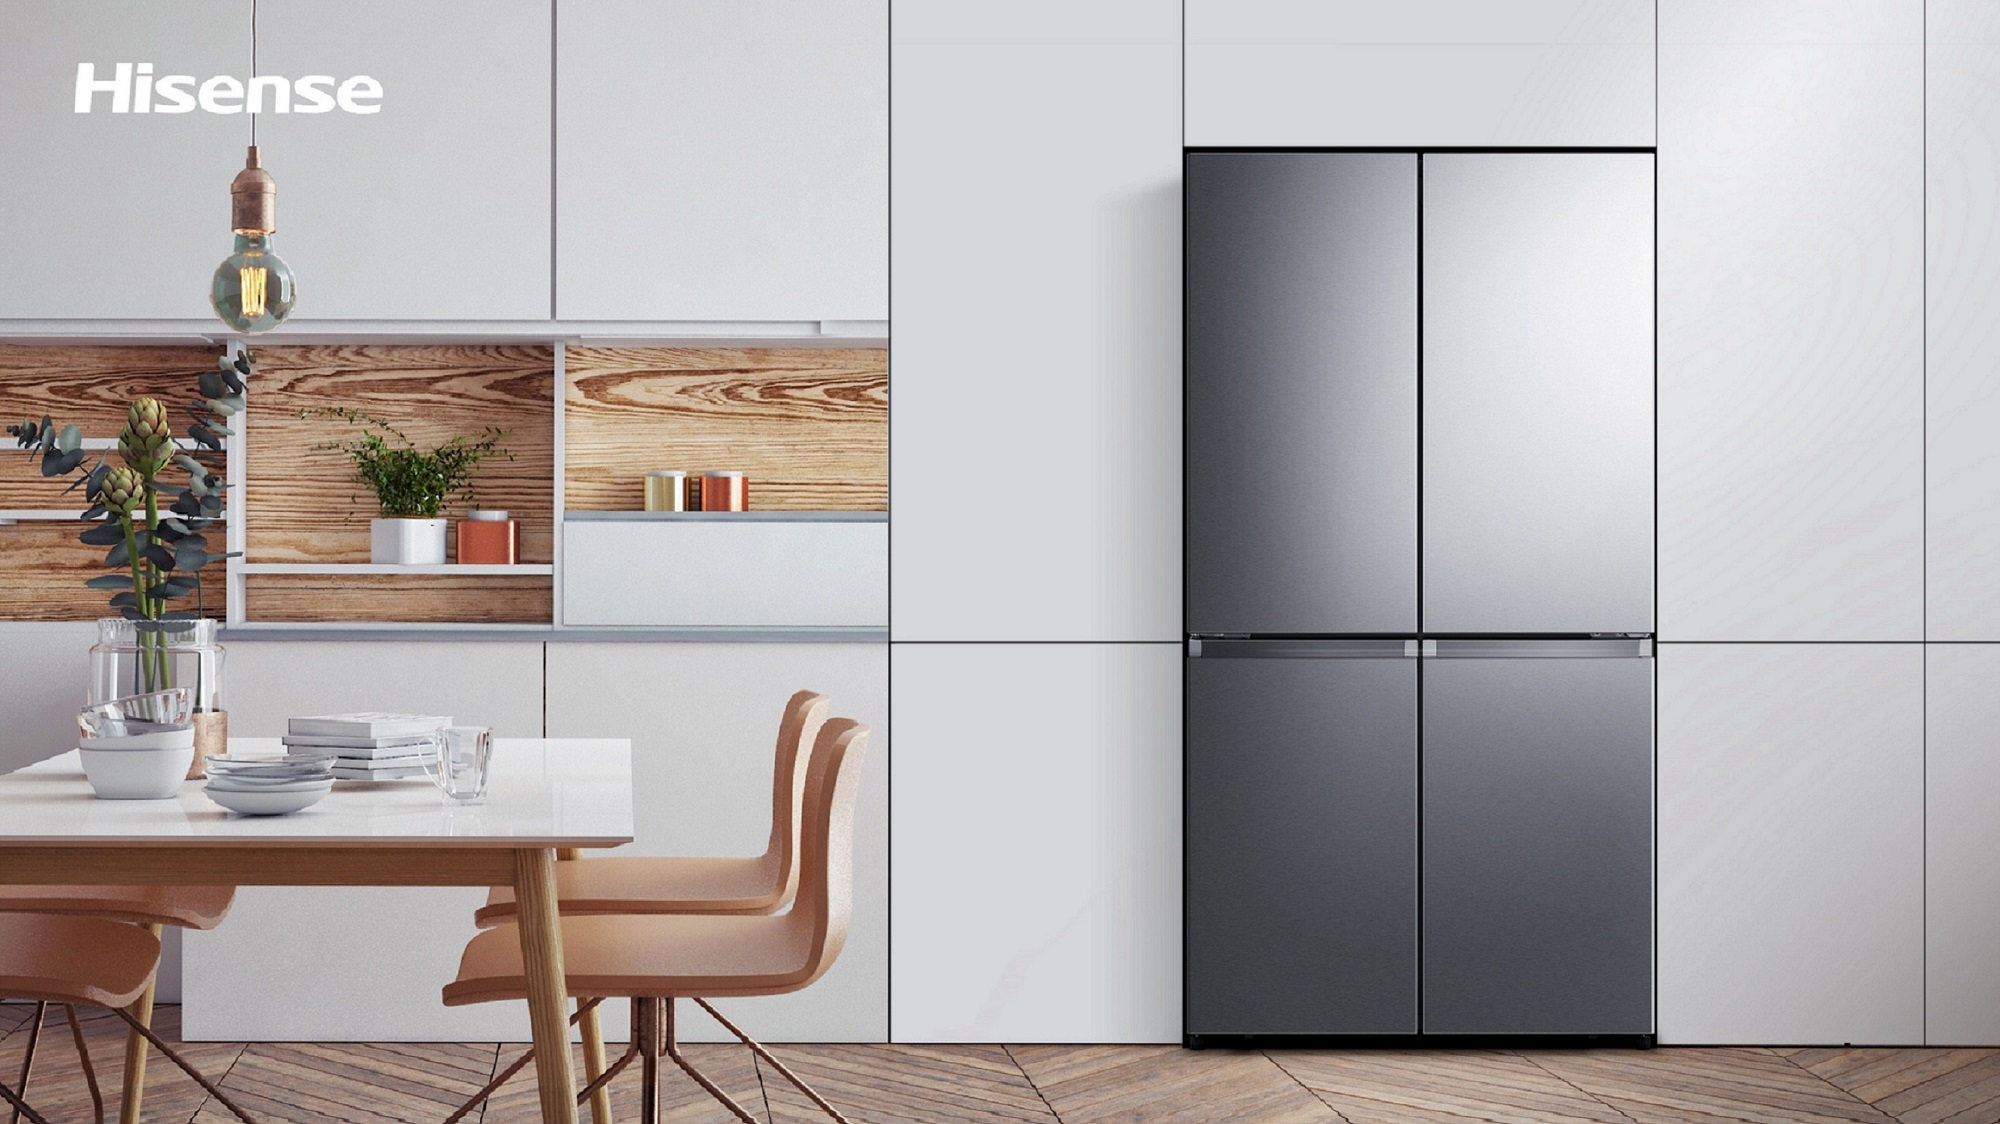 Hisense's Latest Fridge Will Be Your 'Fresh' Choice